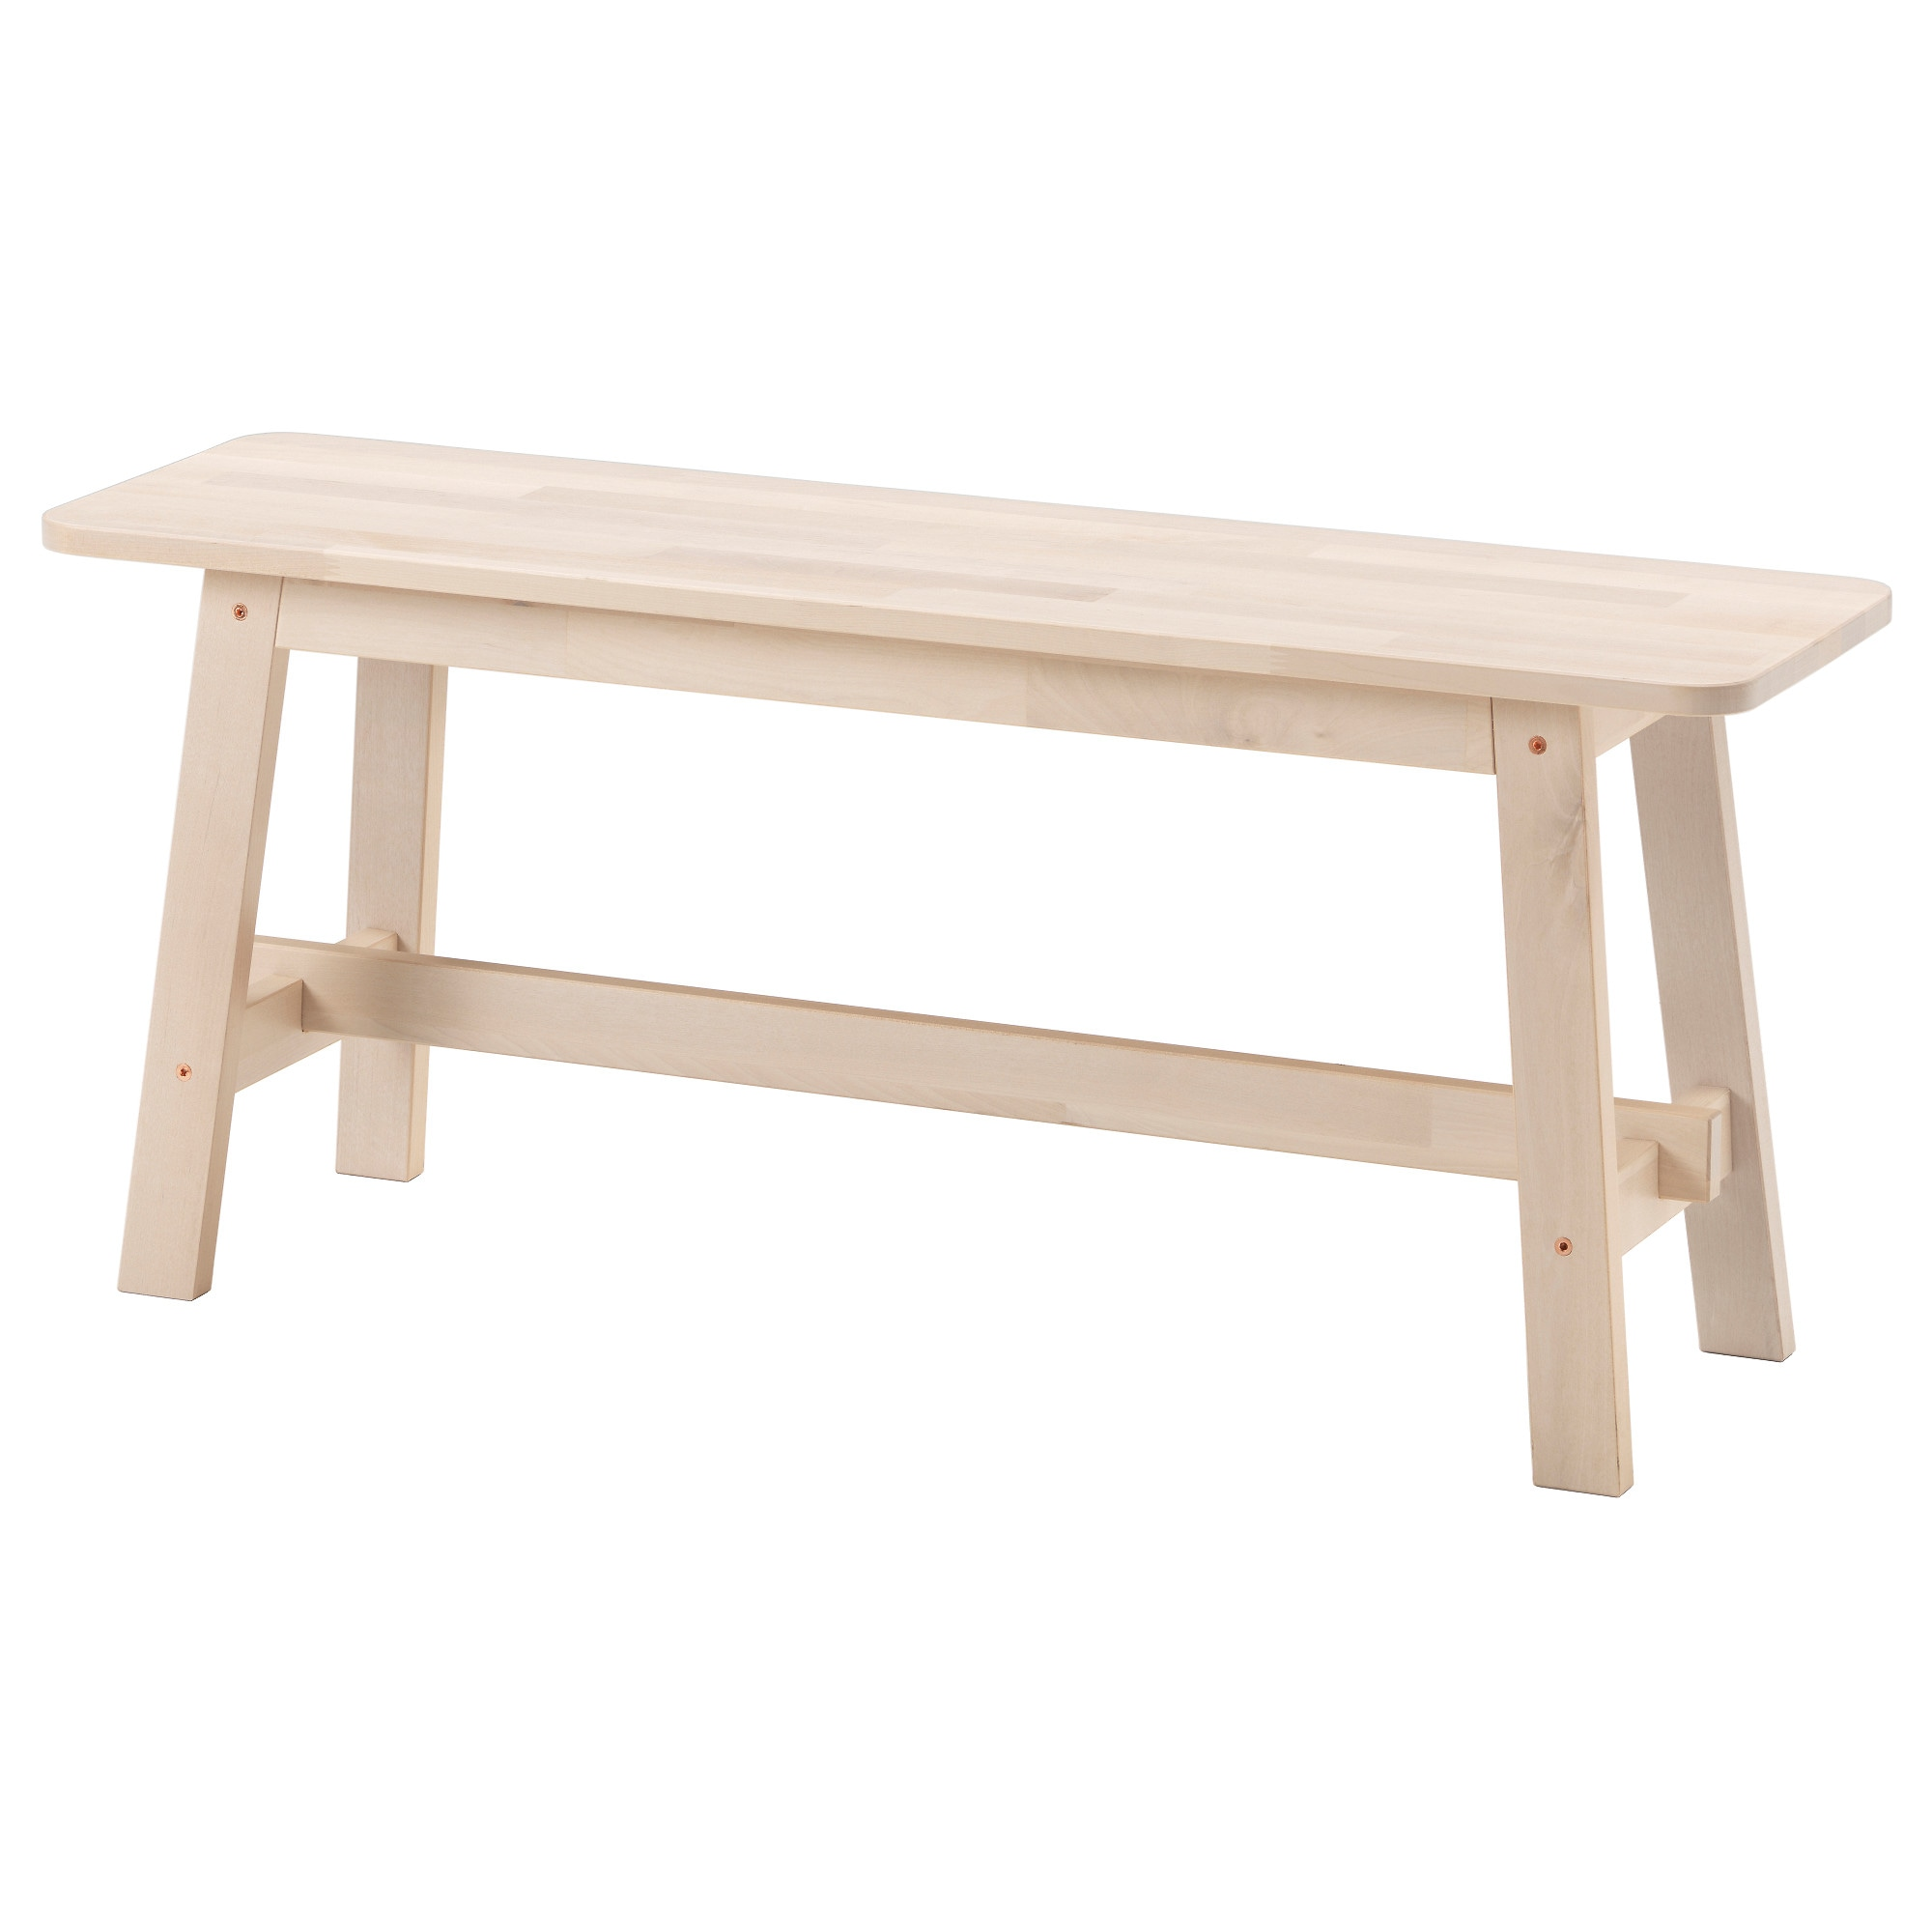 Good Wooden Bench Ikea Part - 1: Inter IKEA Systems B.V. 1999 - 2018 | Privacy Policy | Responsible  Disclosure.